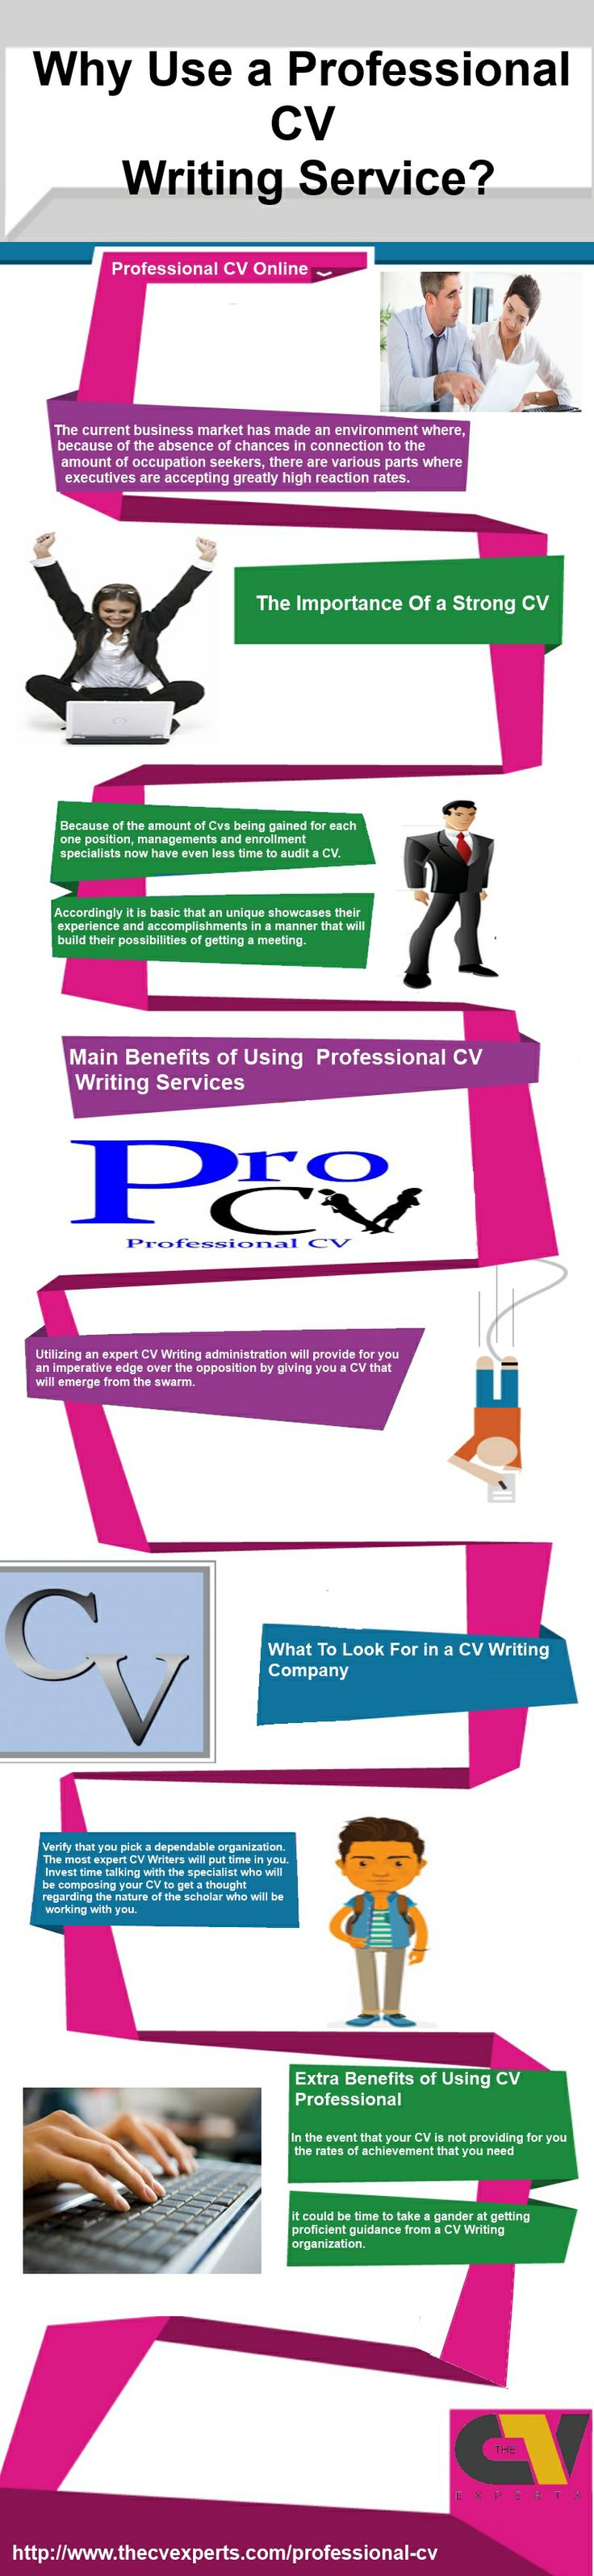 best resume services online Perfect cv is the uae's leading online cv writing service, where we craft professional resumes from scratch at aed 240 24/7 support, free unlimited revisions.